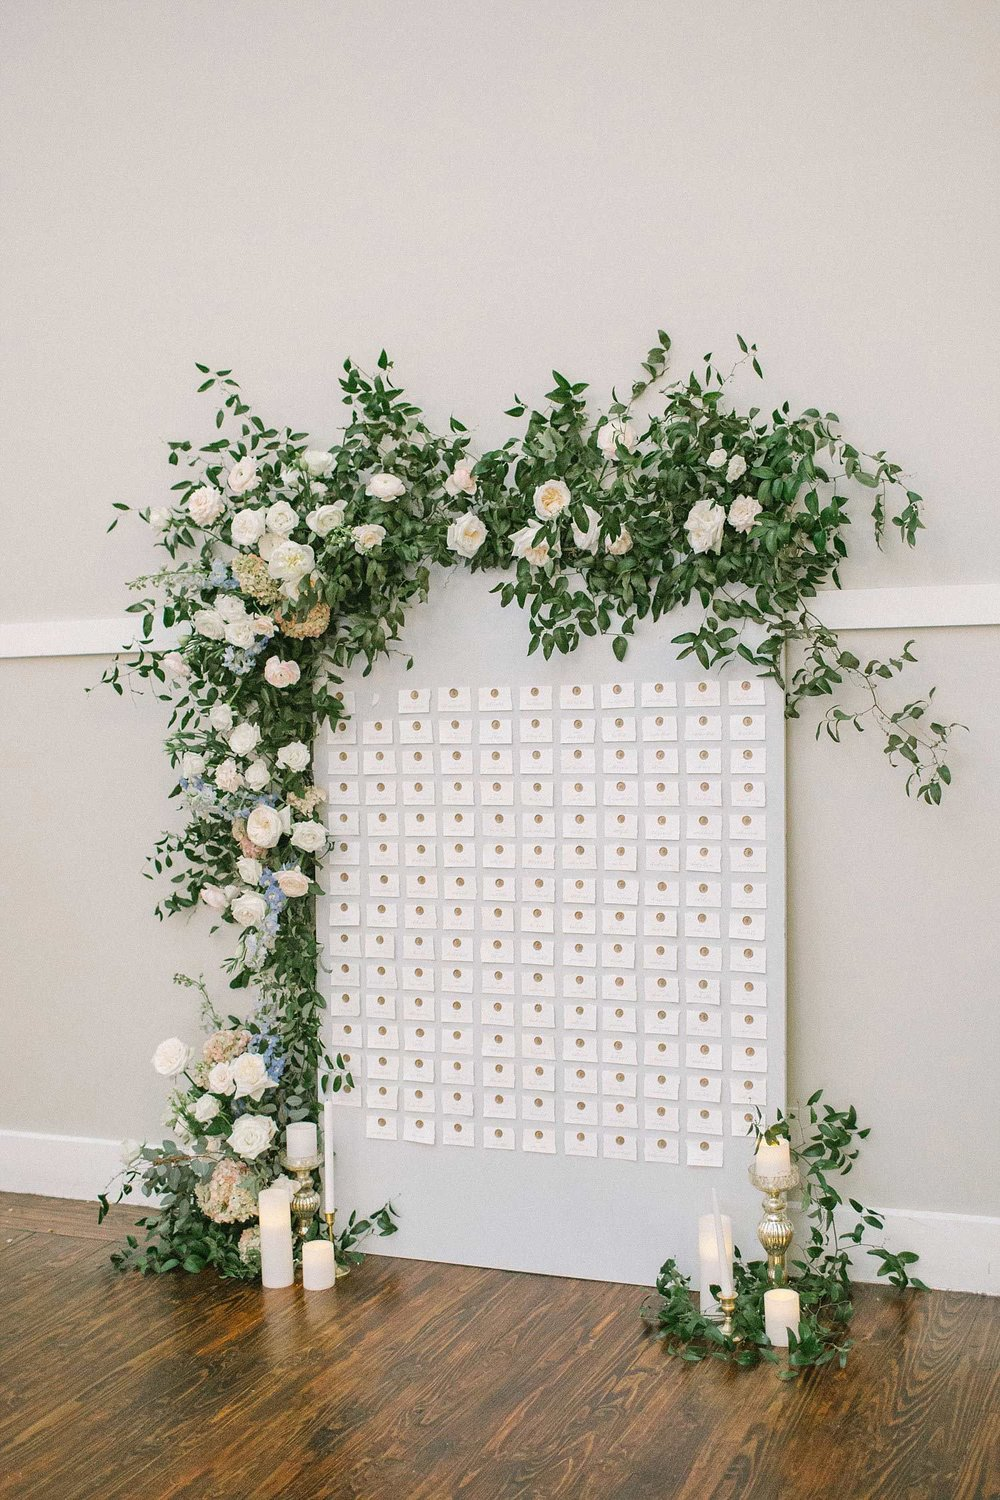 Grey wax seal seating chart with organic flowers